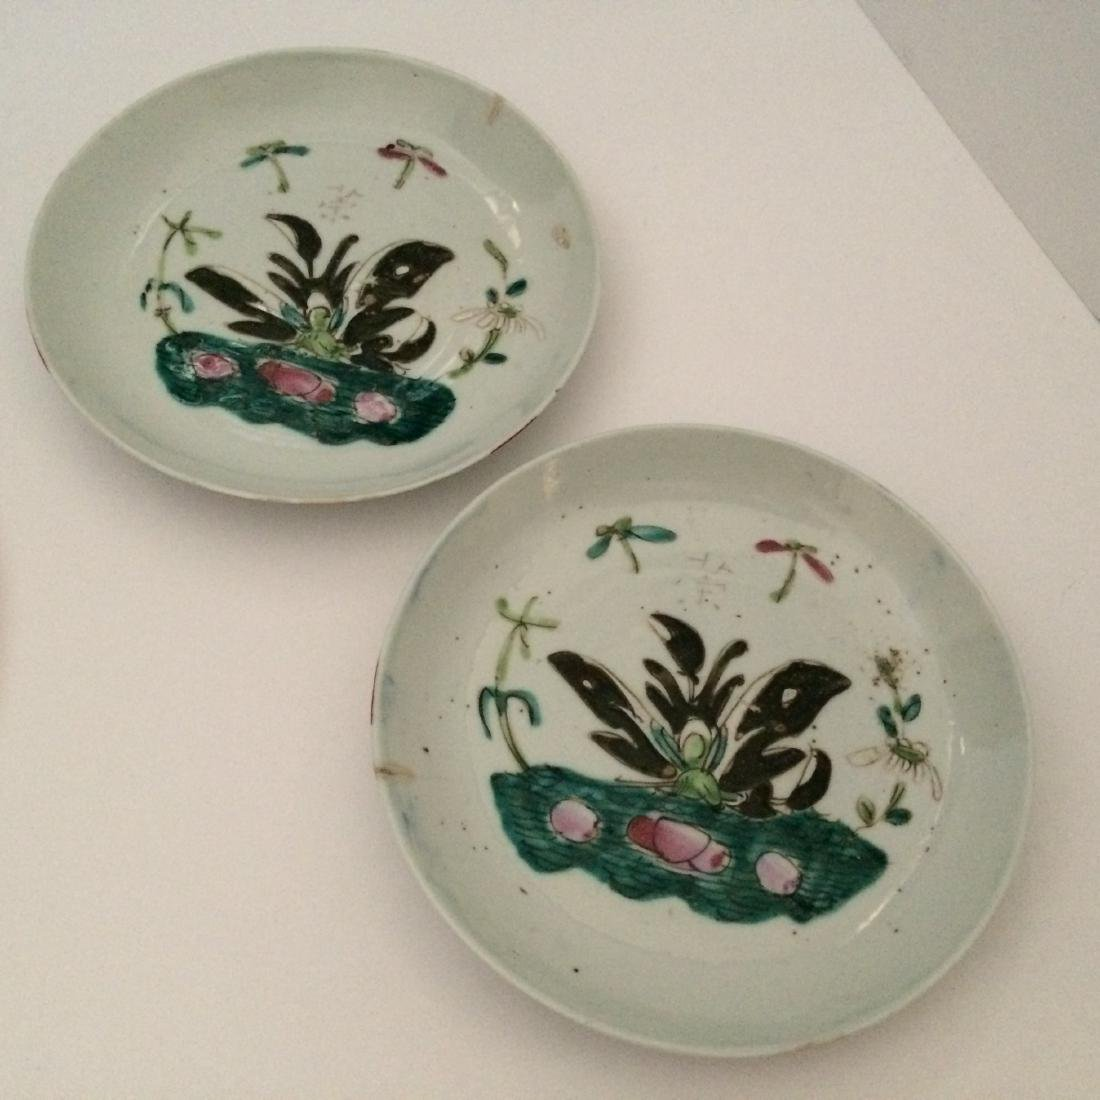 Chinese Chin Dynasty Porcelain Plates Butterfly Design